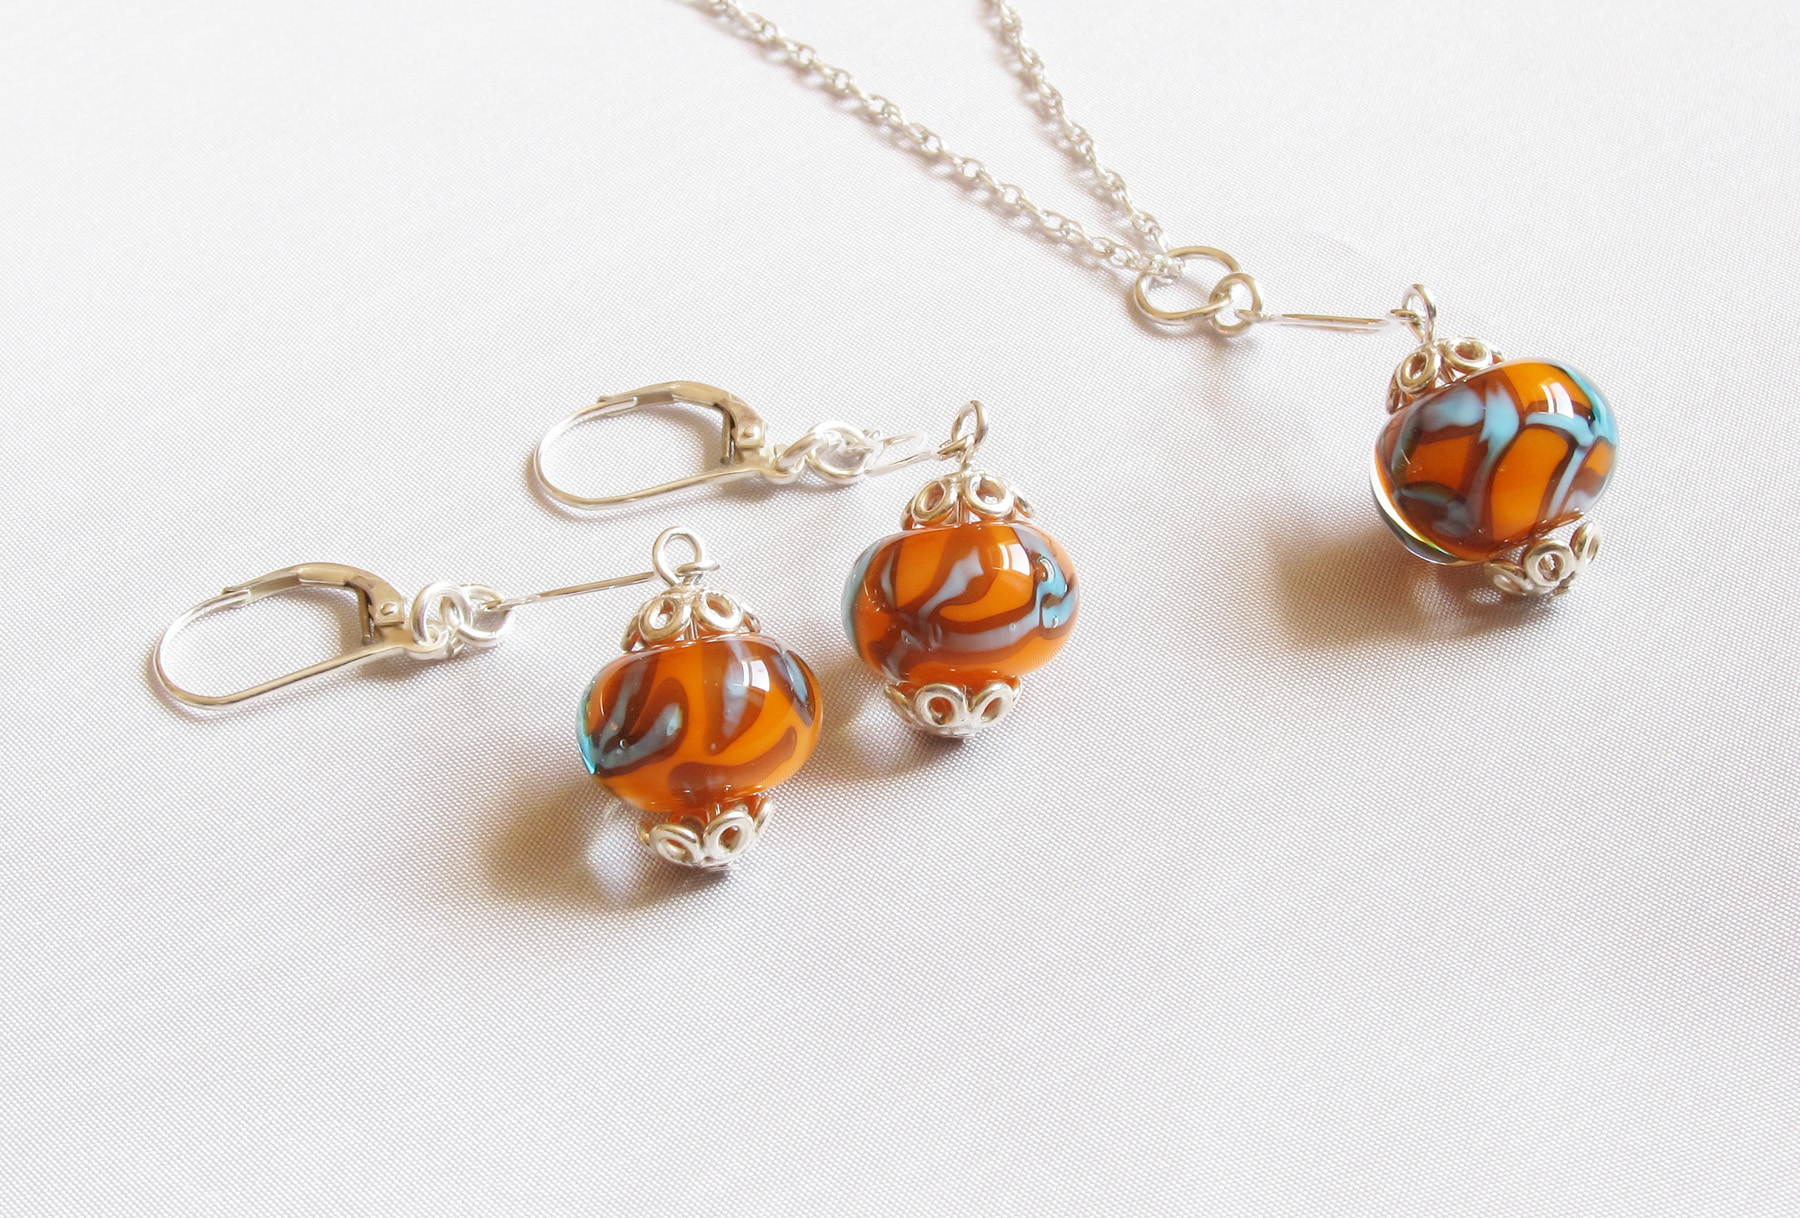 Orange Turquoise Encased Beads Wavy Silver Necklace with Drop and Earrings